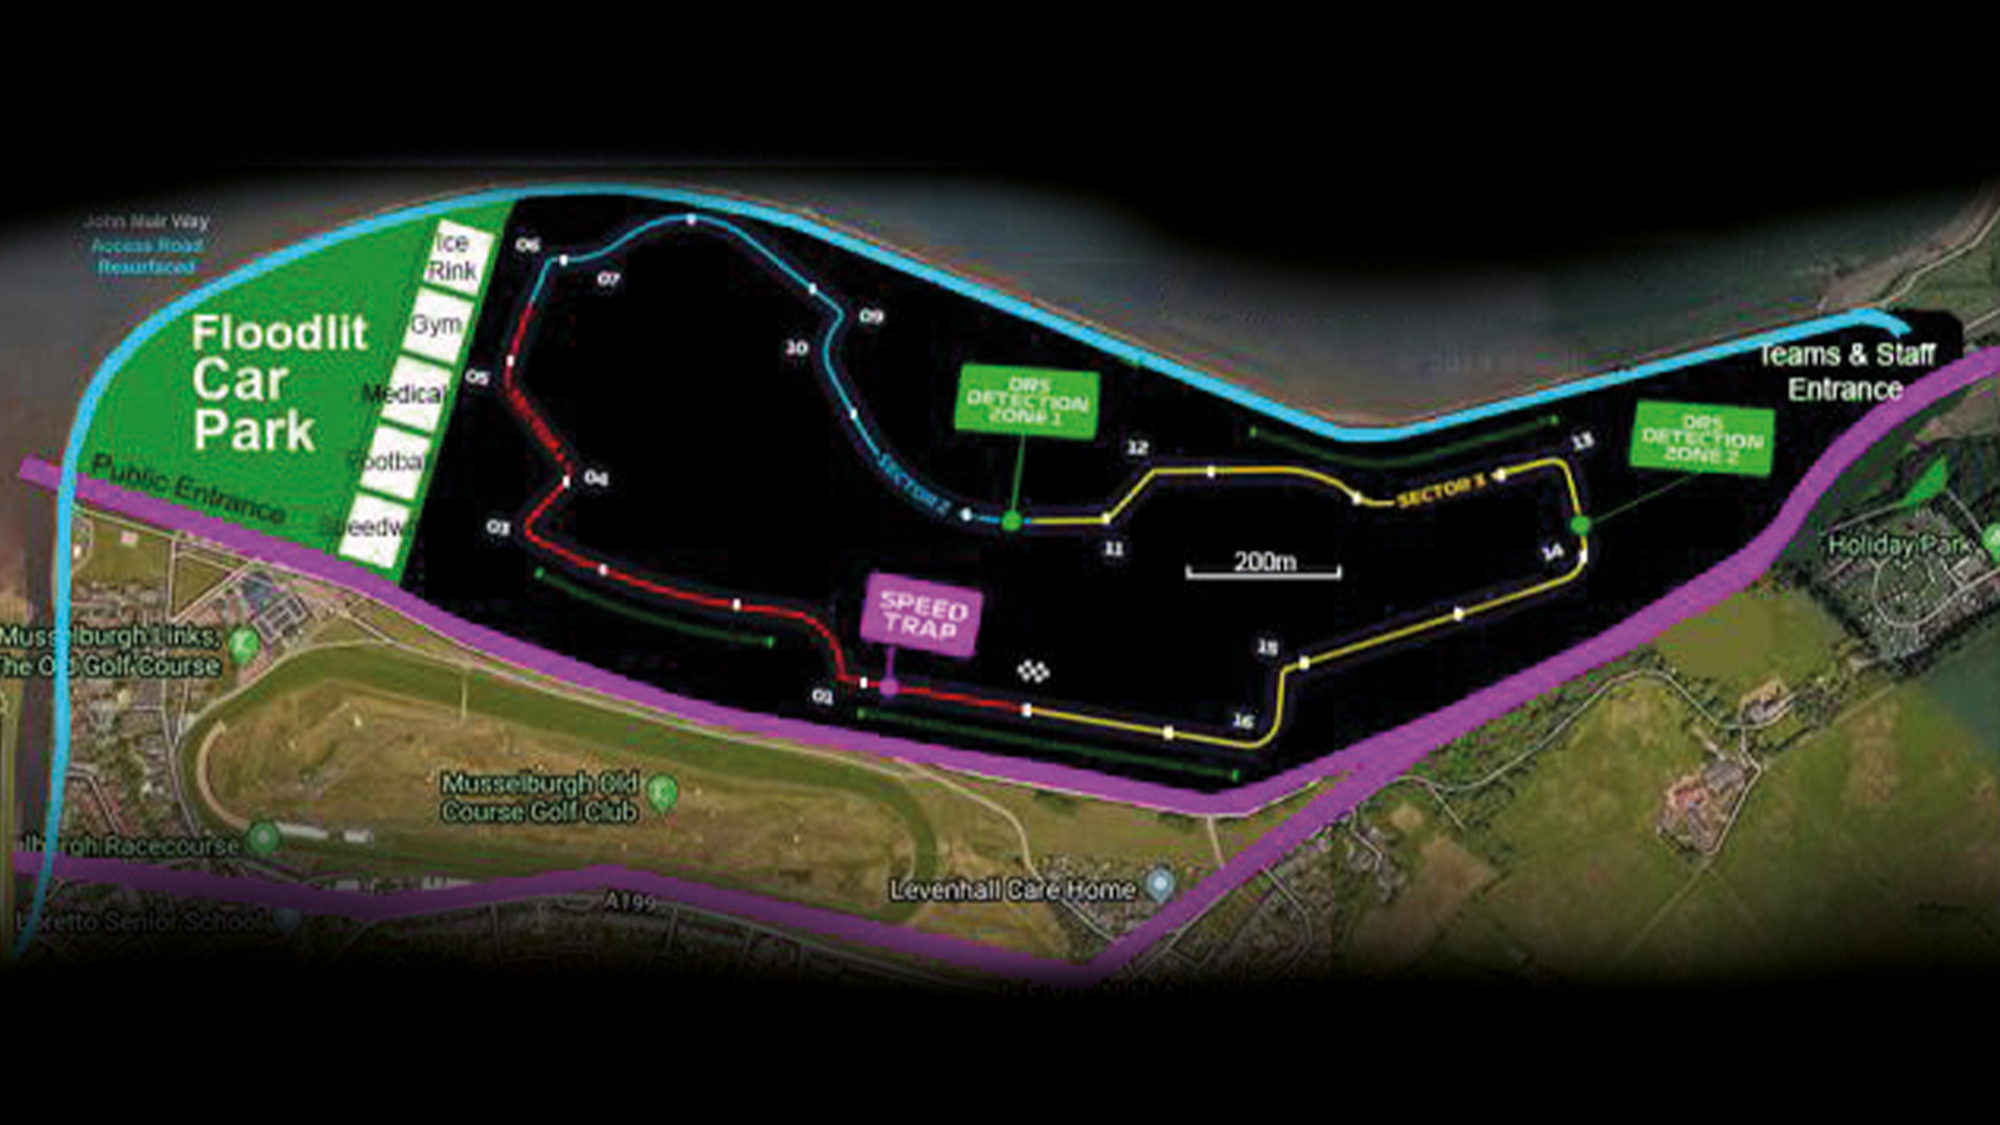 Proposed Musselburgh Lagoons race track